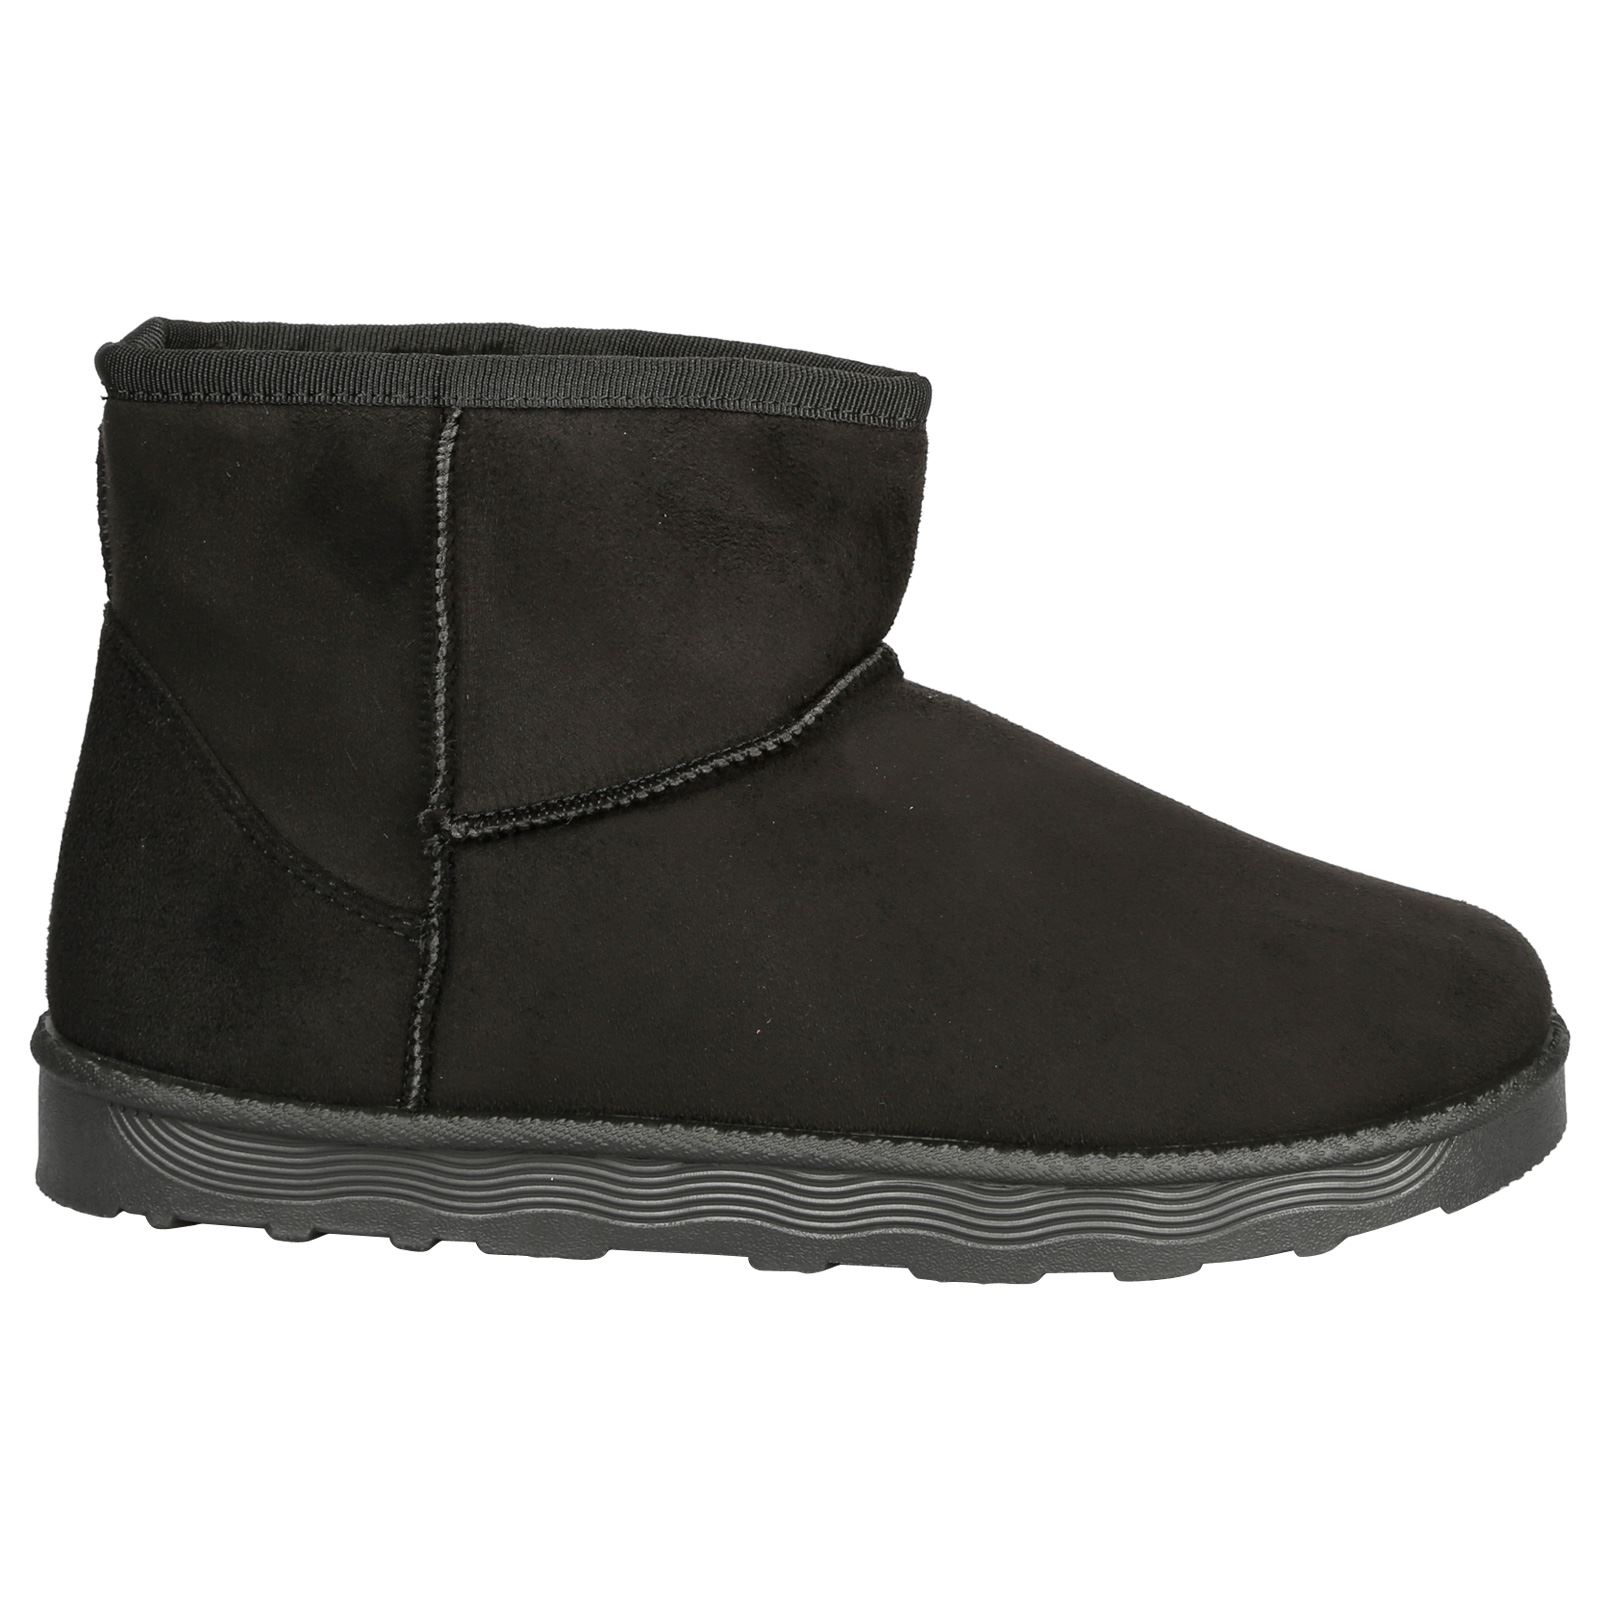 Naomi-Womens-Platfrom-Flat-Fur-Lined-Pull-On-Snug-Snow-Boots-Casual-Ladies-Size thumbnail 3